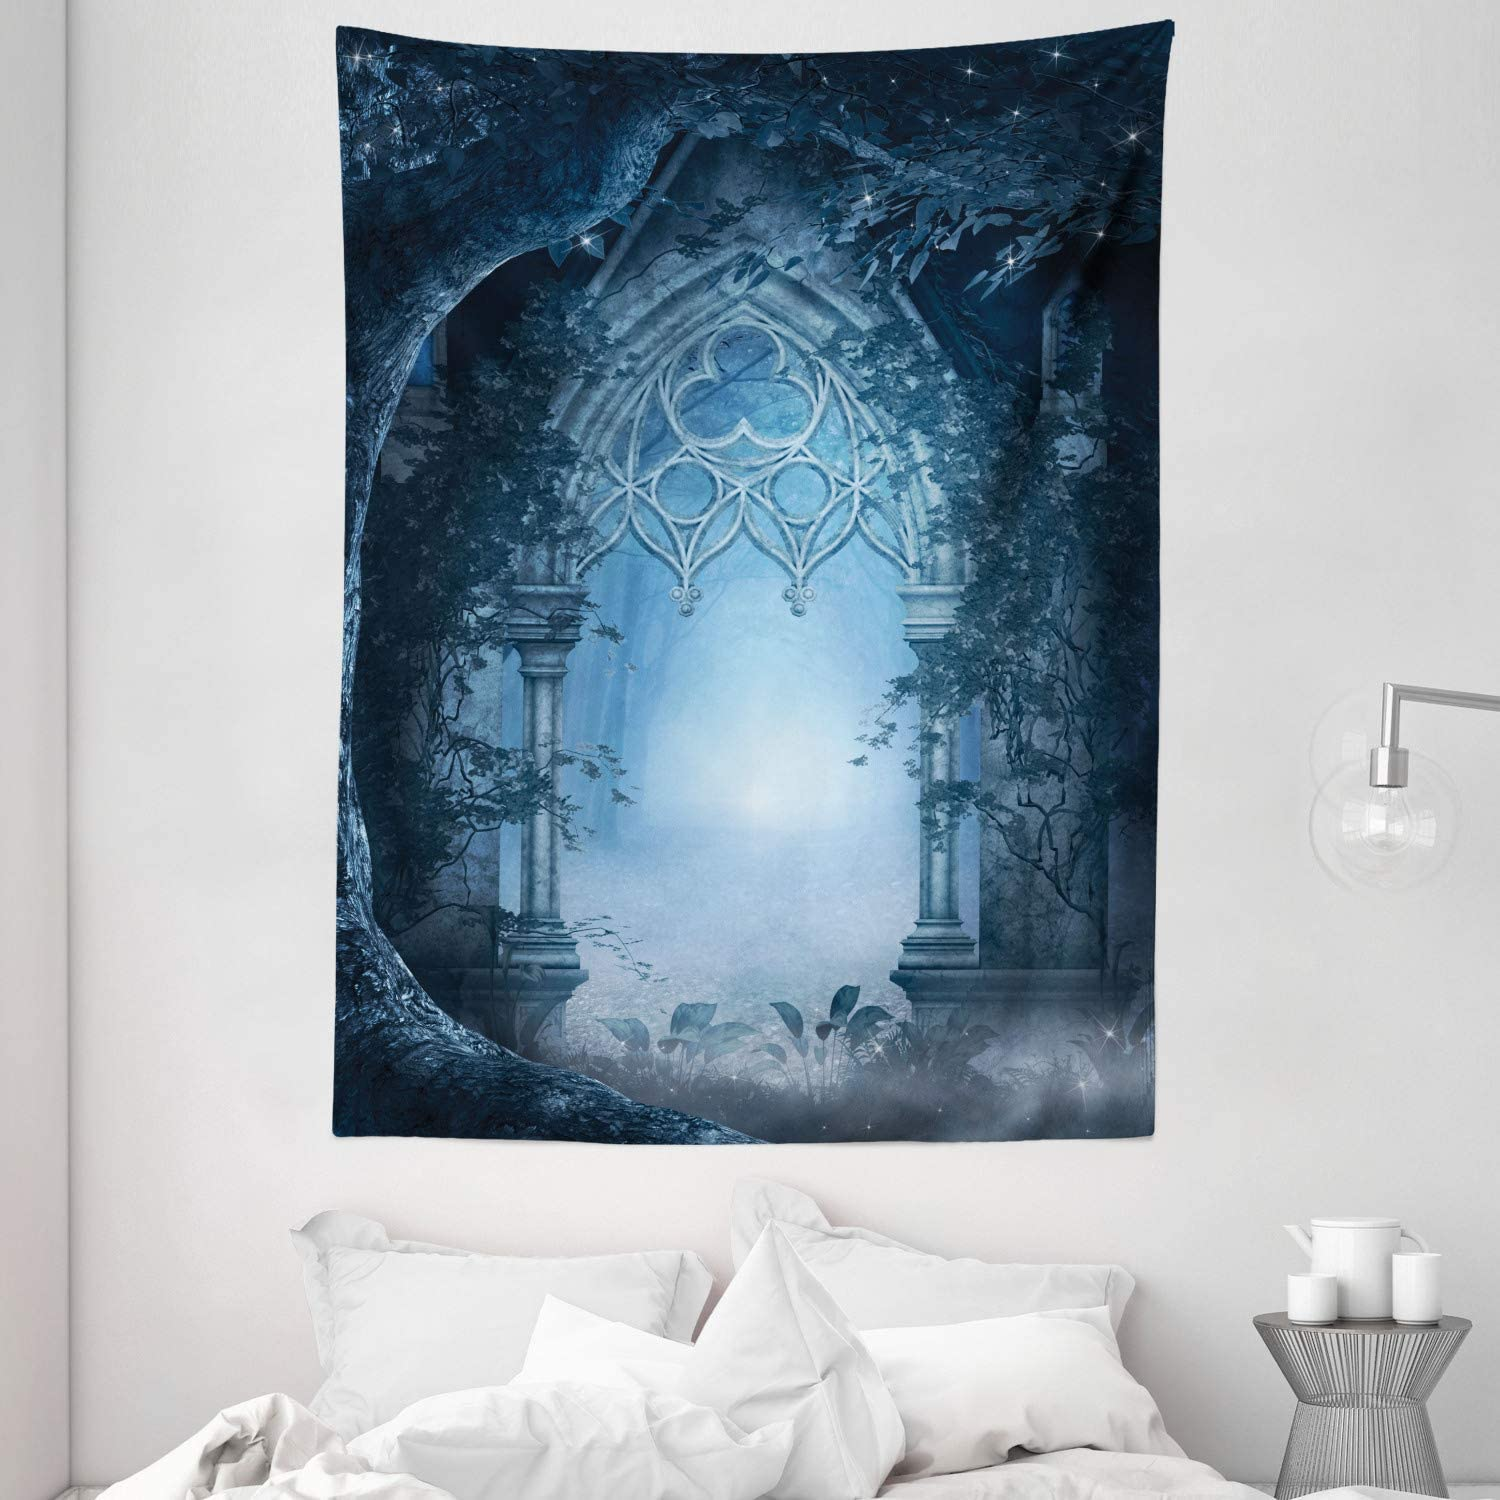 """Ambesonne Fantasy Tapestry, Passage Doorway Through Enchanted Foggy Palace Garden at Night View, Wall Hanging for Bedroom Living Room Dorm, 60"""" X 80"""", Navy Gray"""